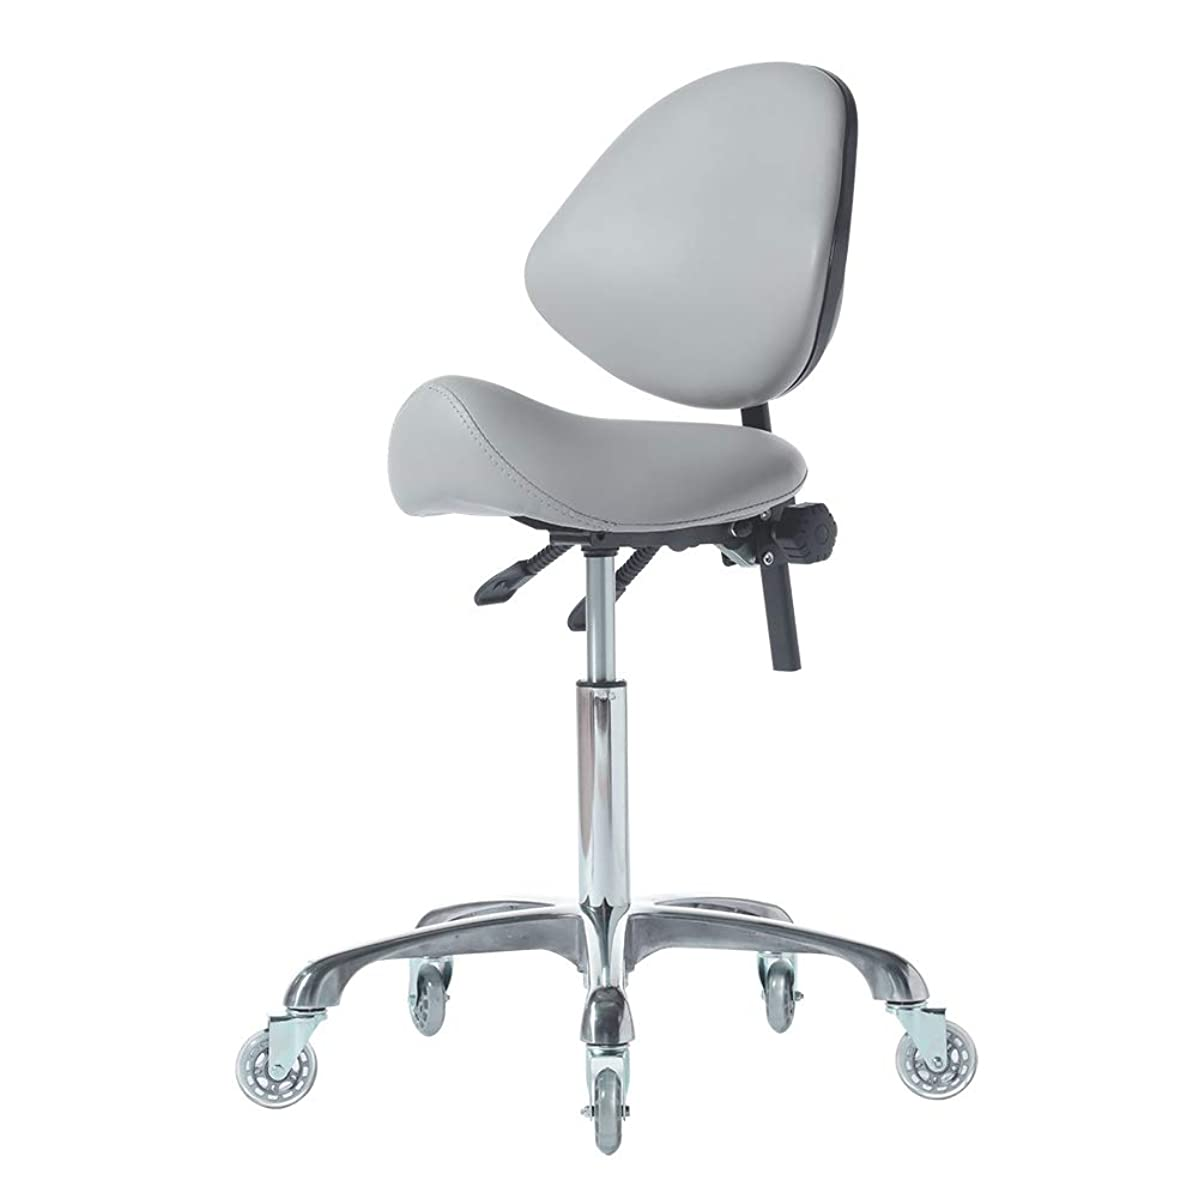 FRNIAMC Adjustable Saddle Stool Chairs With Back Support Ergonomic Rolling Seat For Medical Clinic Hospital Lab Pharmacy Studio Salon Workshop Office And Home(Light Grey)